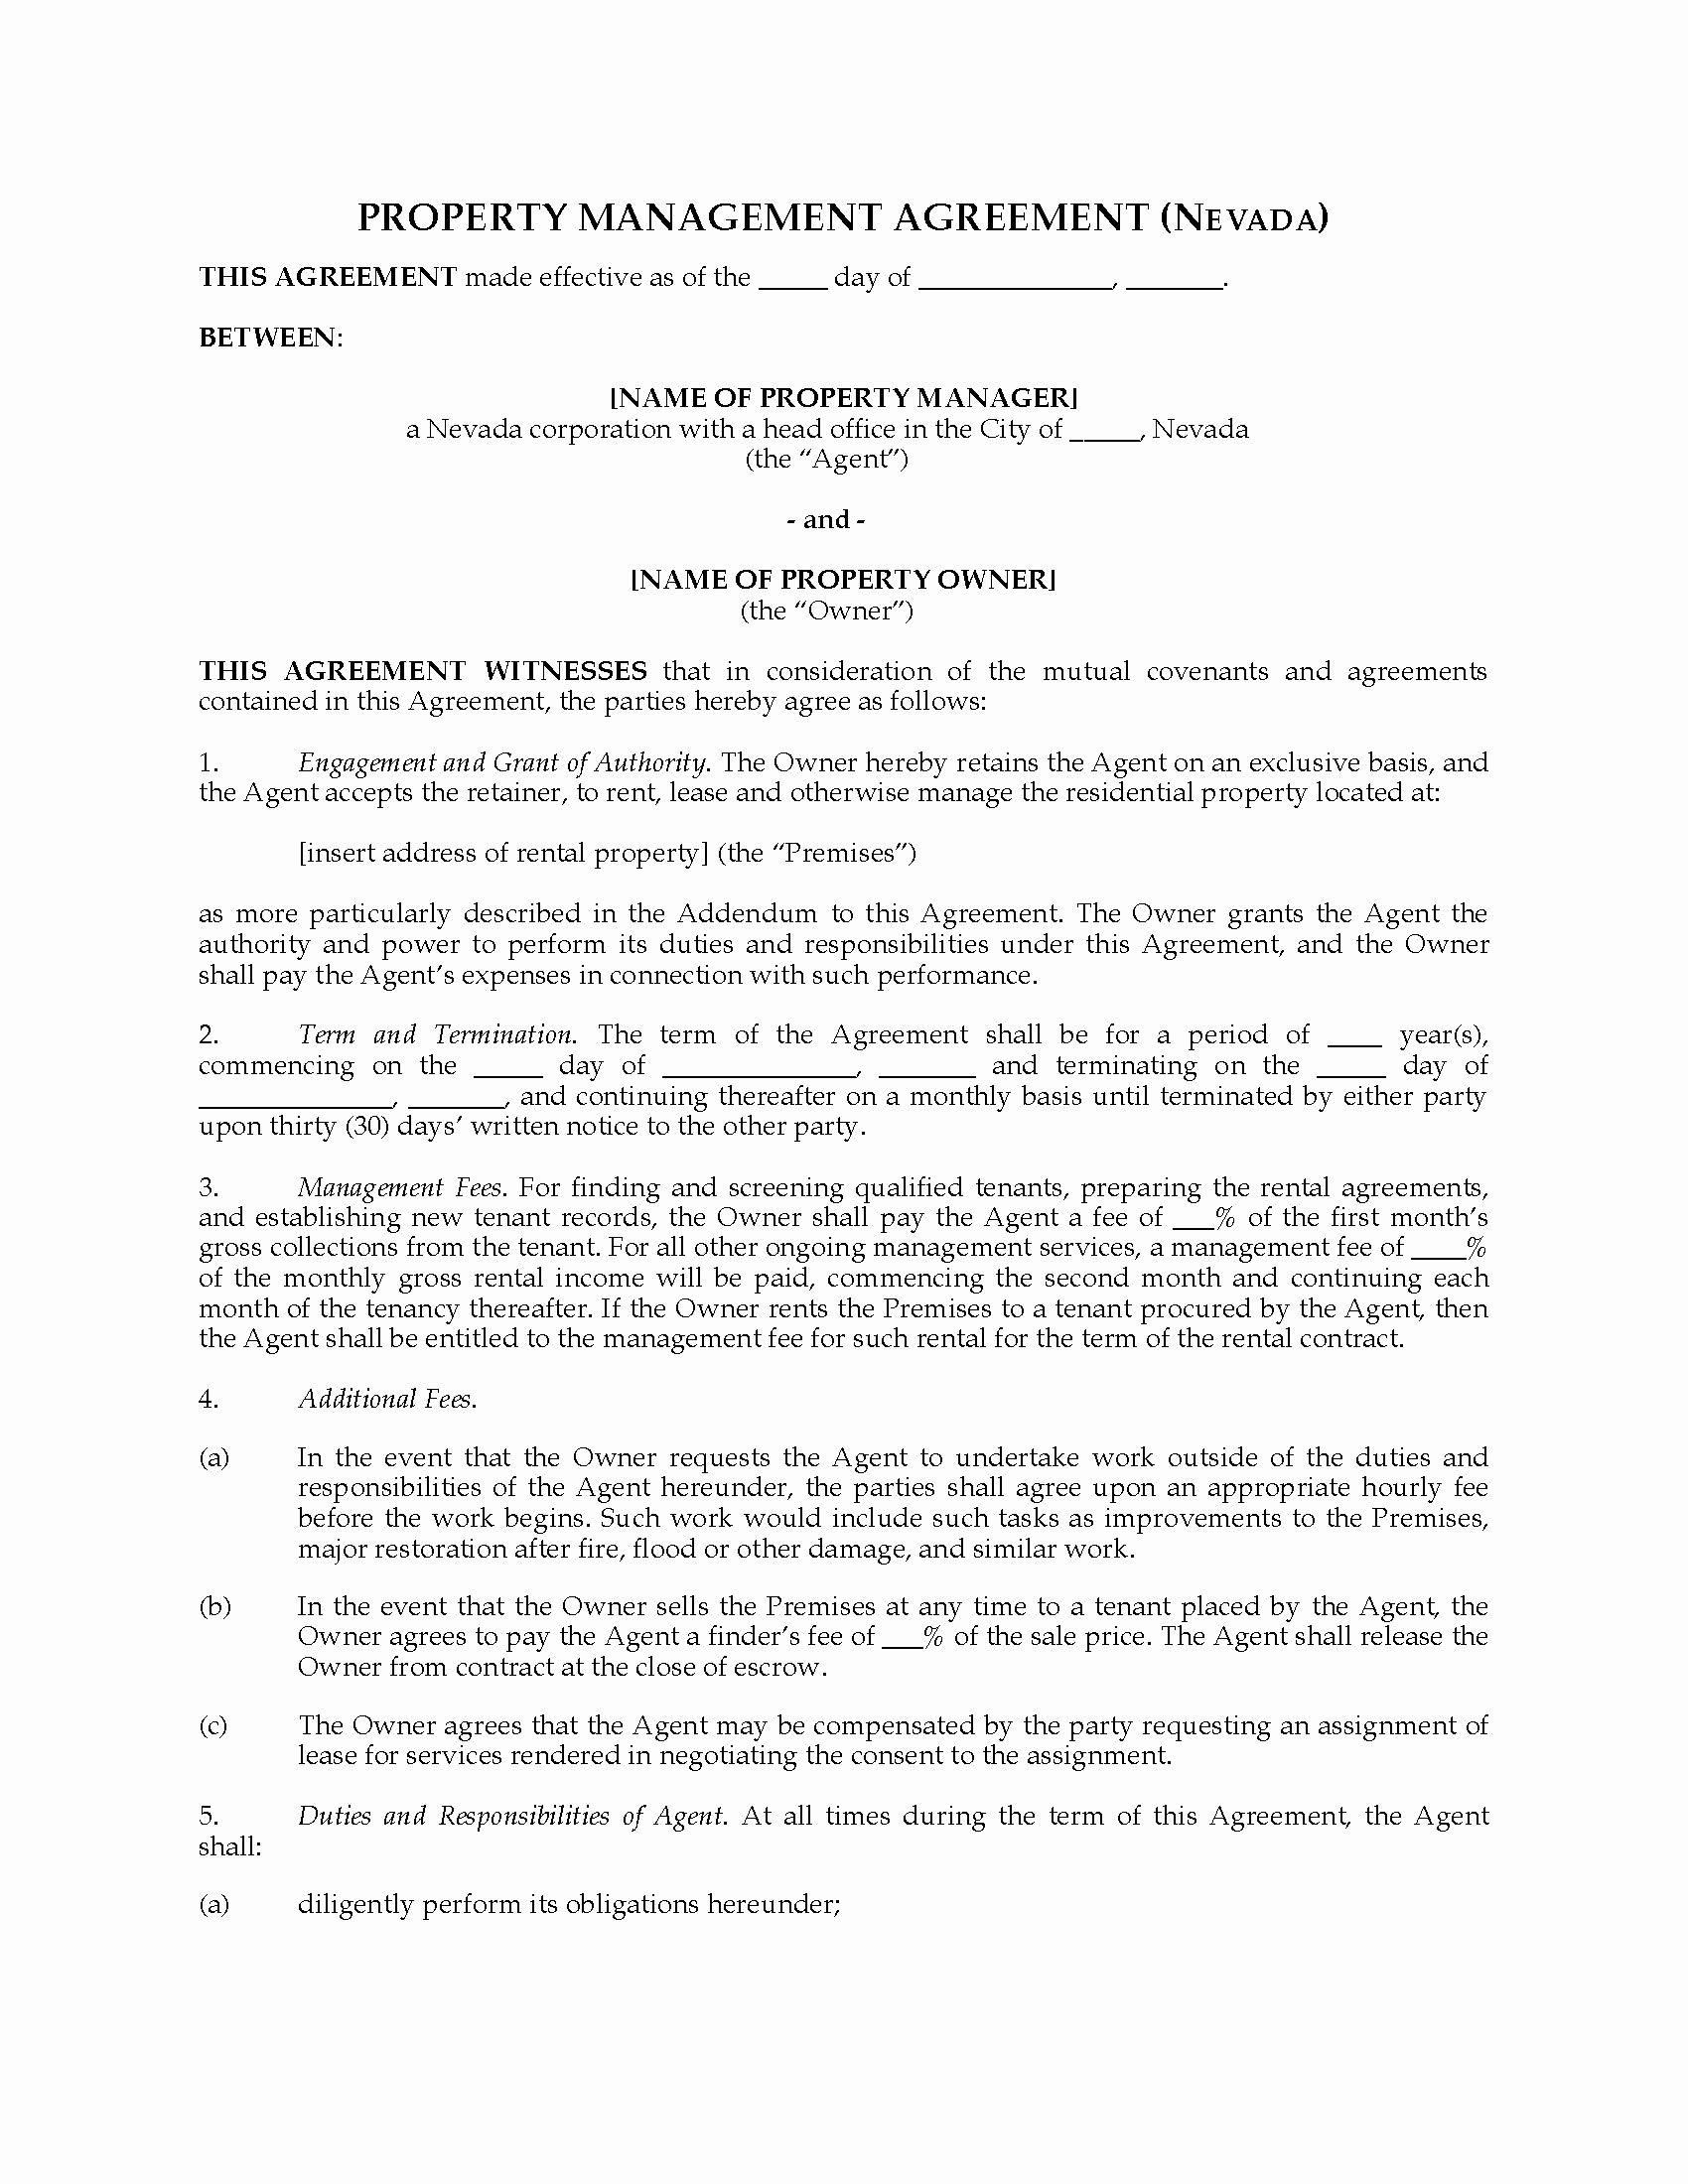 Property Management Contract Template Elegant Nevada Rental Property Management Agreement